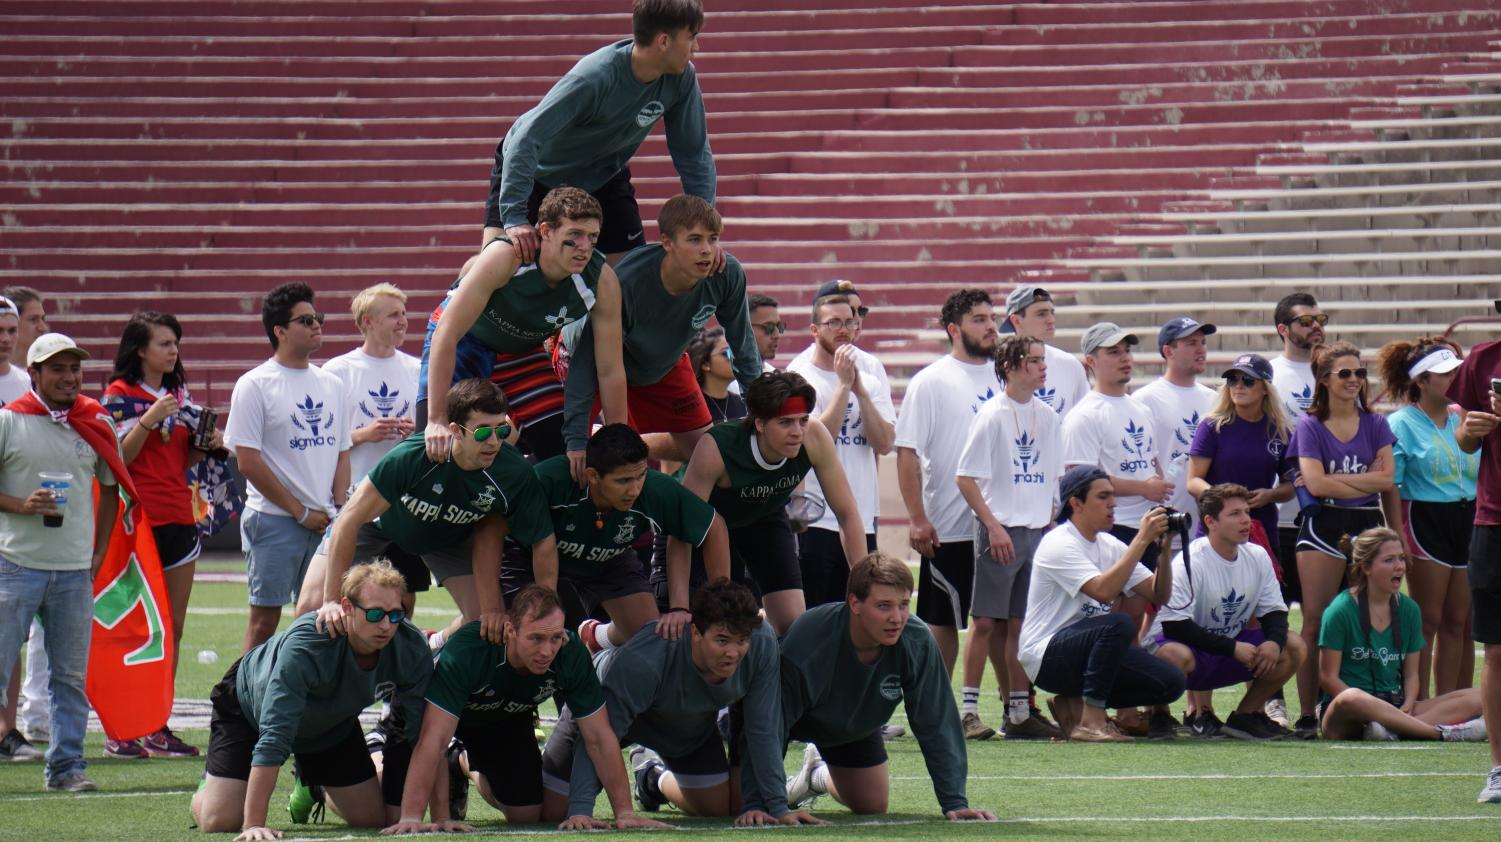 Kappa Sigma holding together their pyramid.